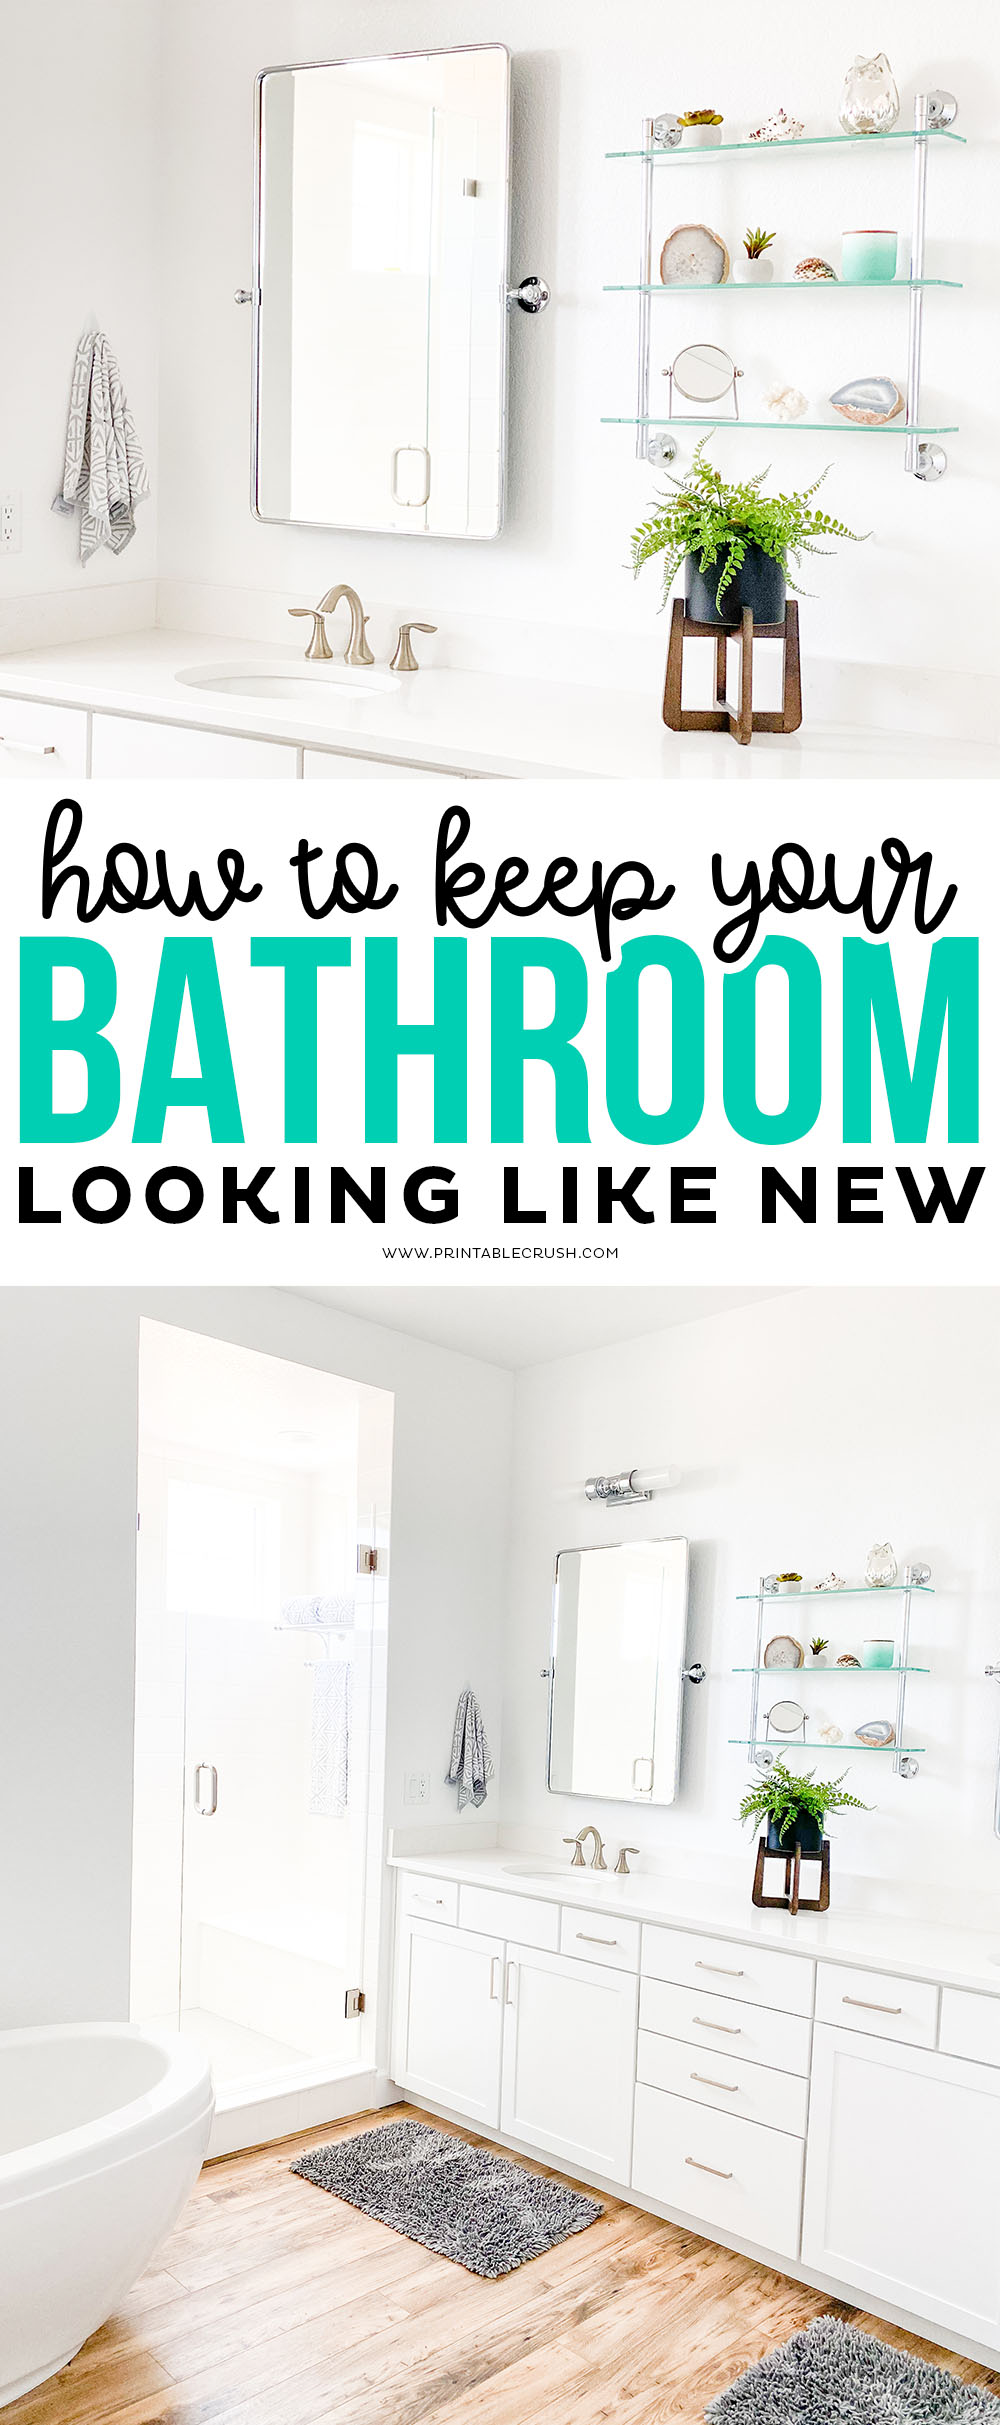 How to Keep a Clean Bathroom - Printable Crush